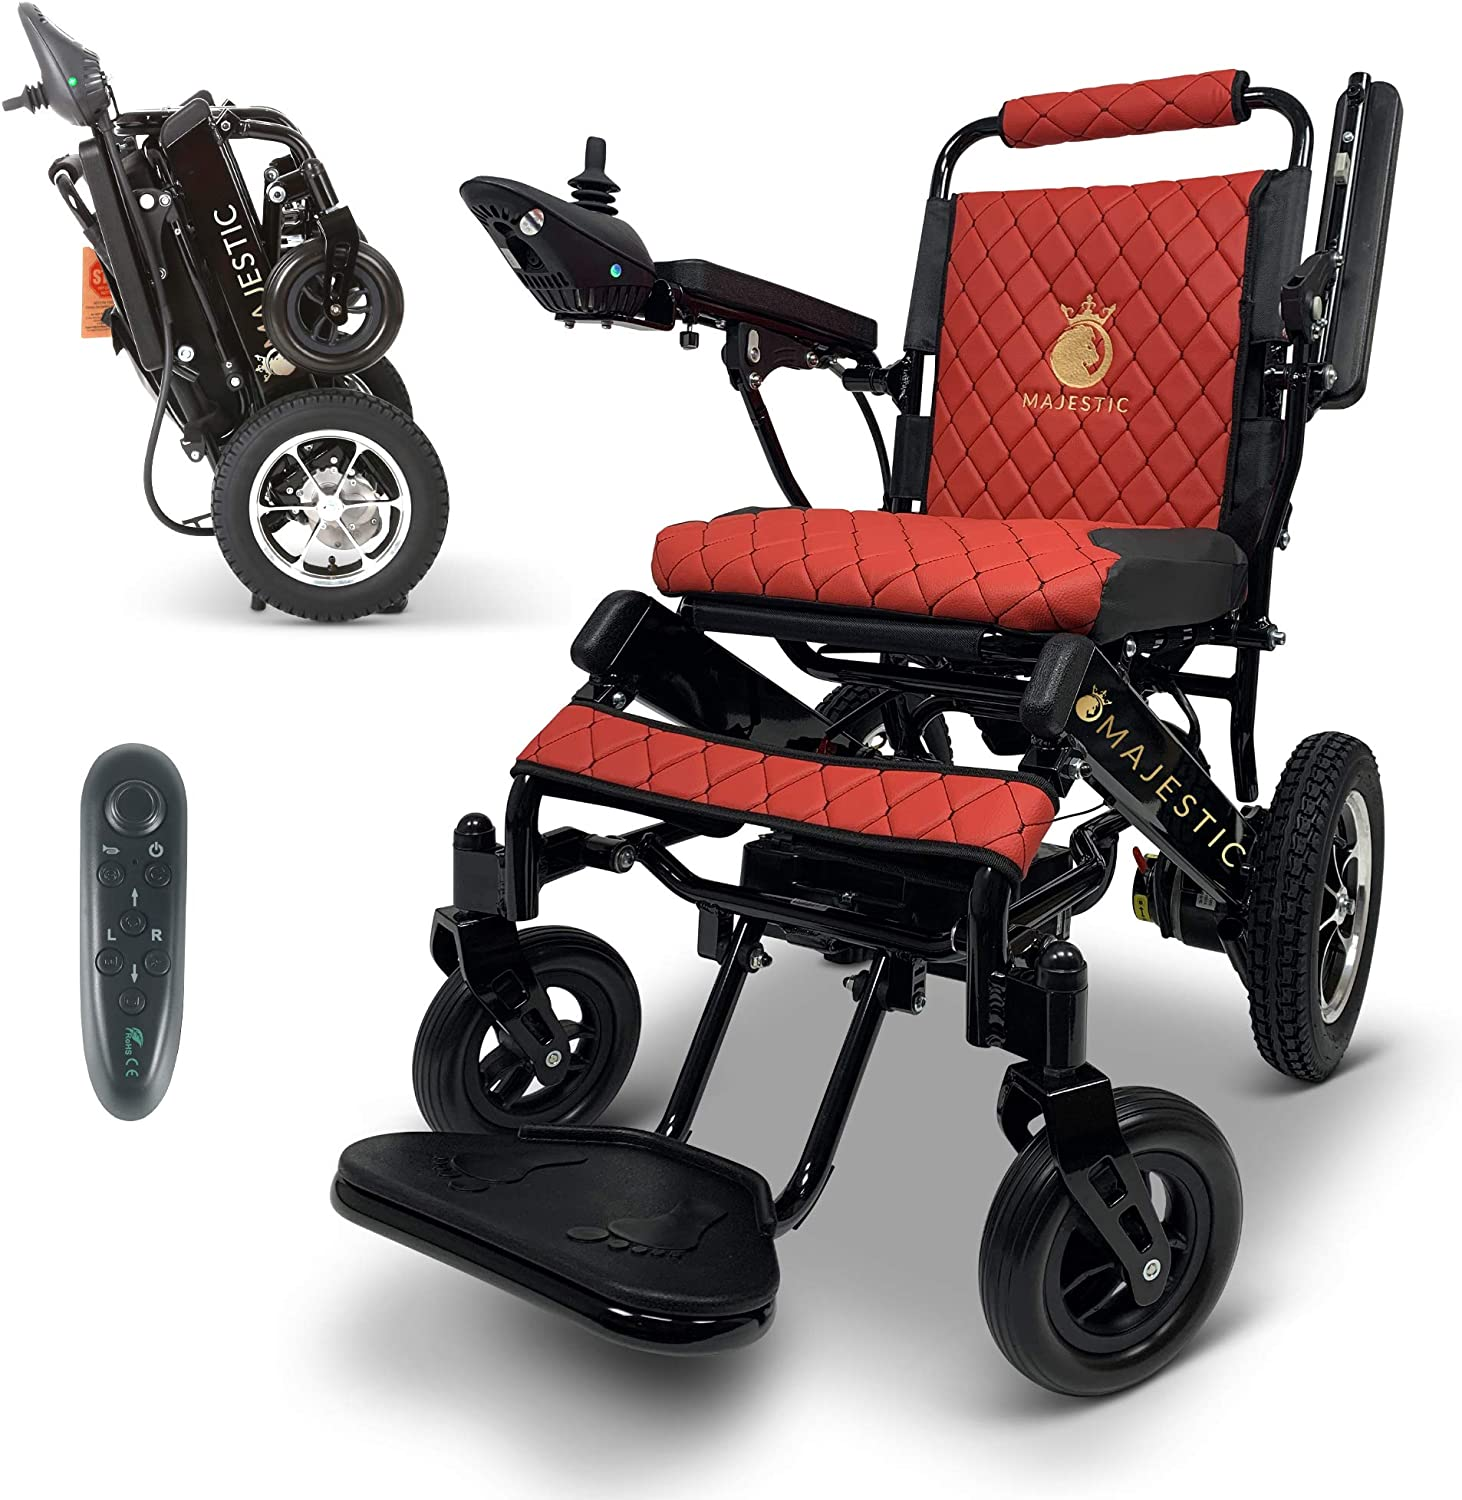 """2021 New Lightweight Electric Wheelchair - Remote Control Electric Wheelchairs Lightweight Foldable Motorize Power Electrics Wheel Chair Mobility Aid (17.5"""" Seat Width): Health & Personal Care"""